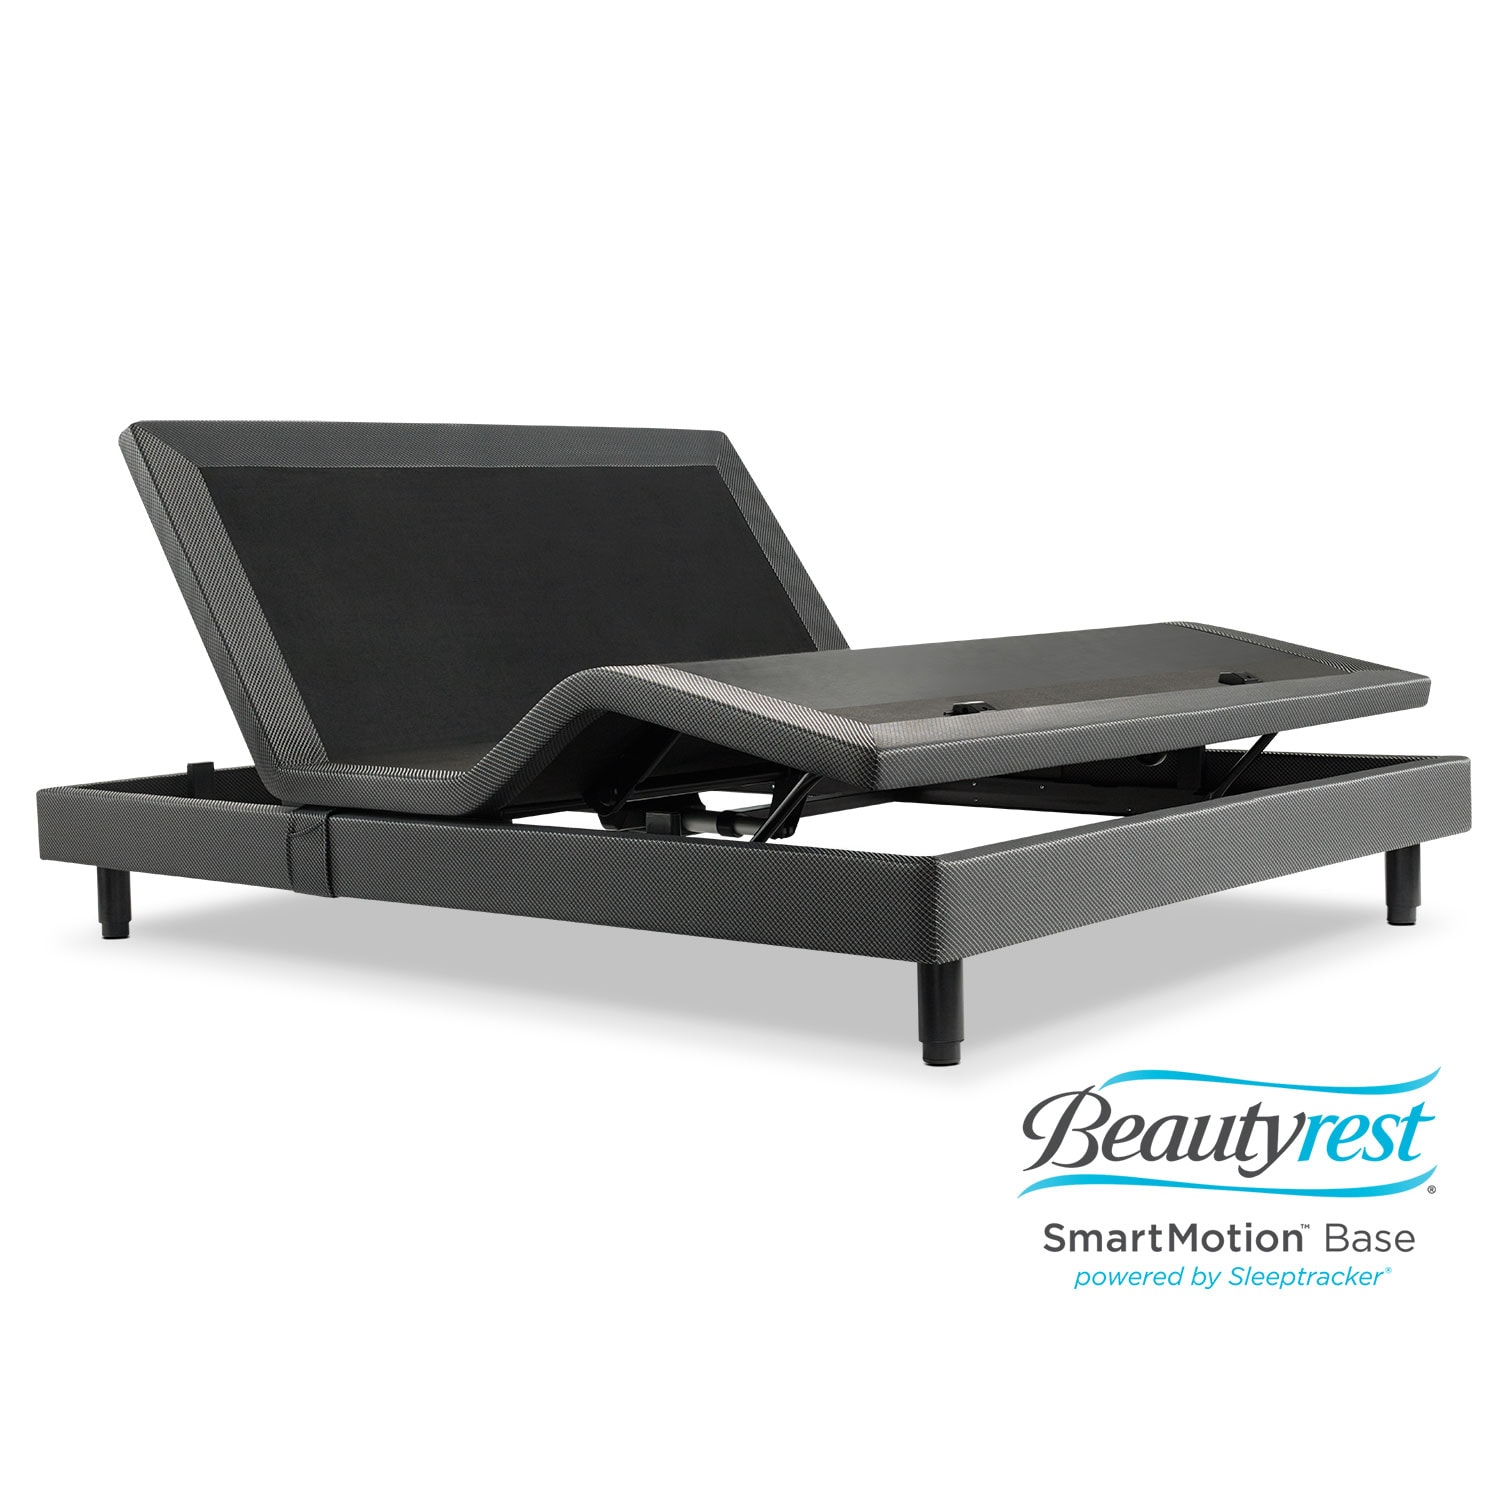 Mattresses and Bedding - Beautyrest SmartMotion 2.0 King Split Adjustable Base